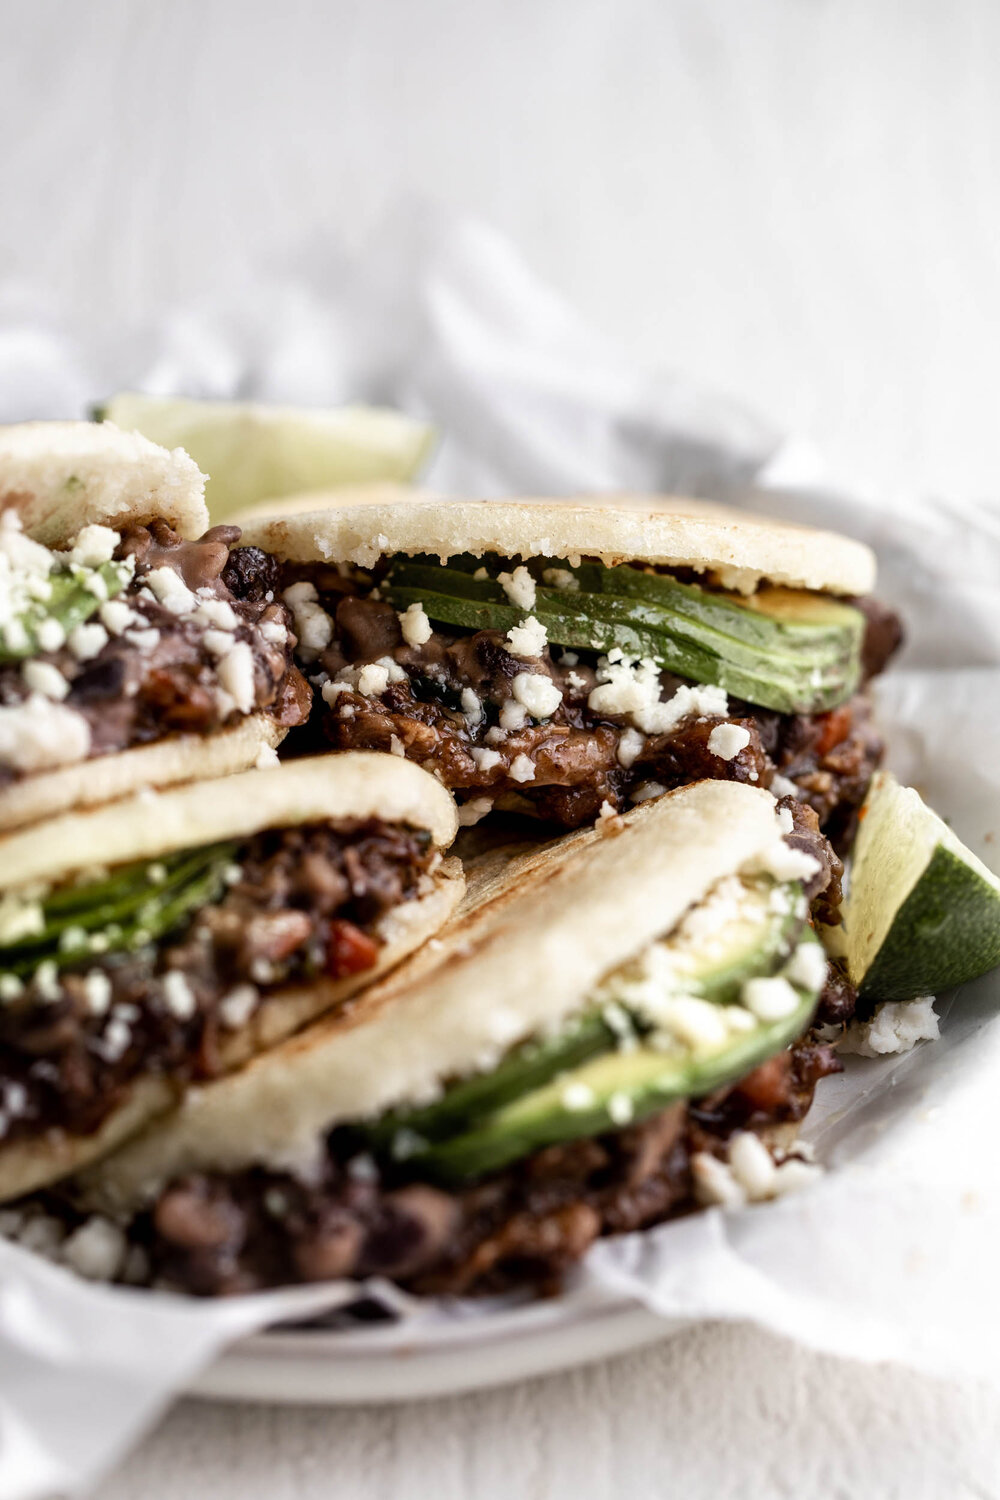 Braised Oxtail Arepas with Avocado & Black Beans